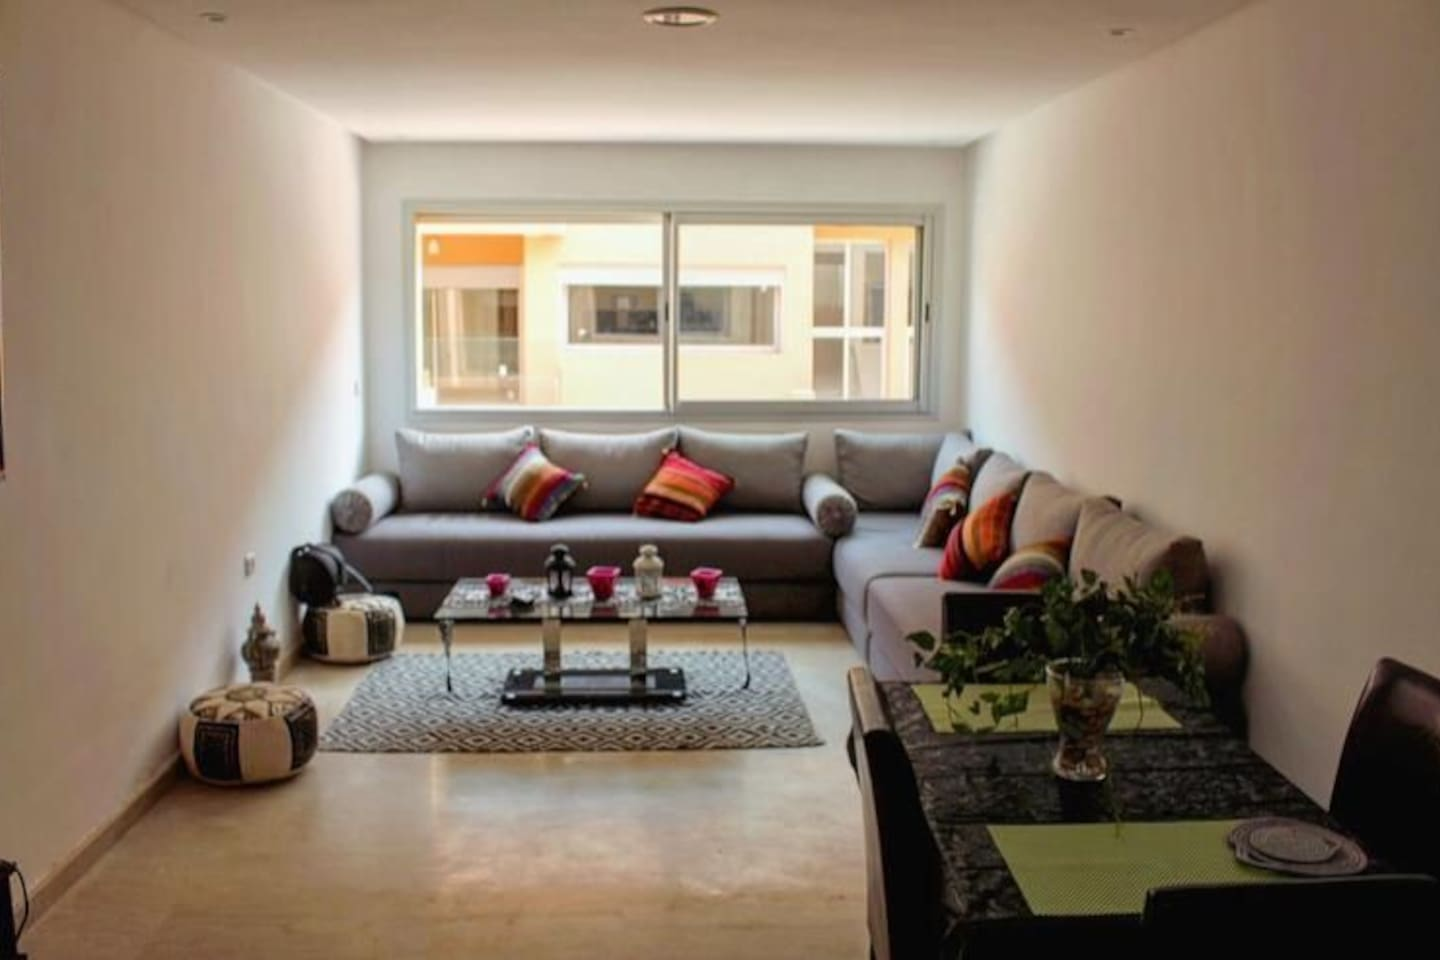 A 20m² large living room. Illuminated space and a wide range of moroccan decoration. You can enjoy watching TV, working or having a meal in this space.